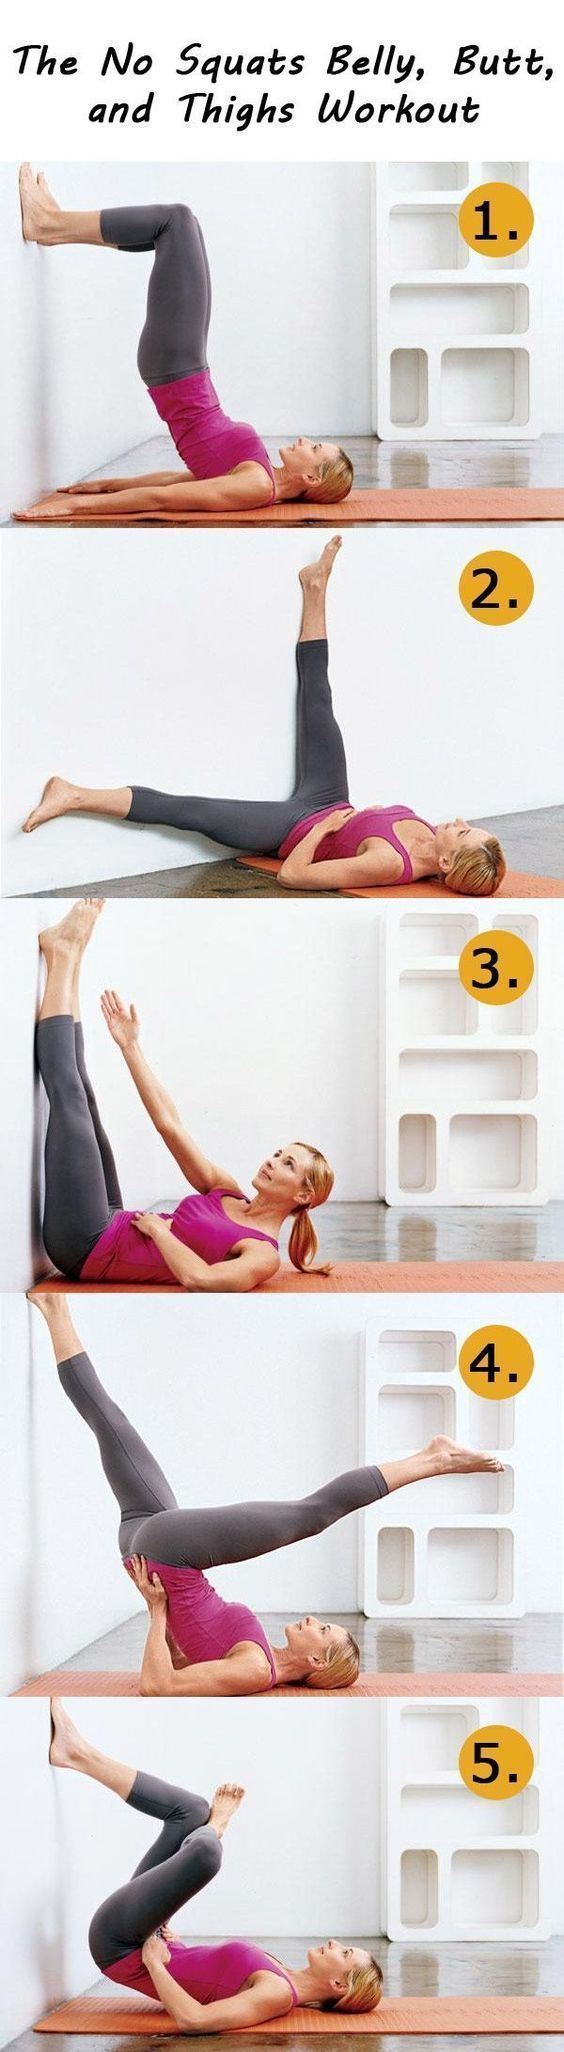 With this fantastic workout routine you will be able to flatten your belly, slim your thighs, and firm your butt in 2 weeks! #firmbutts